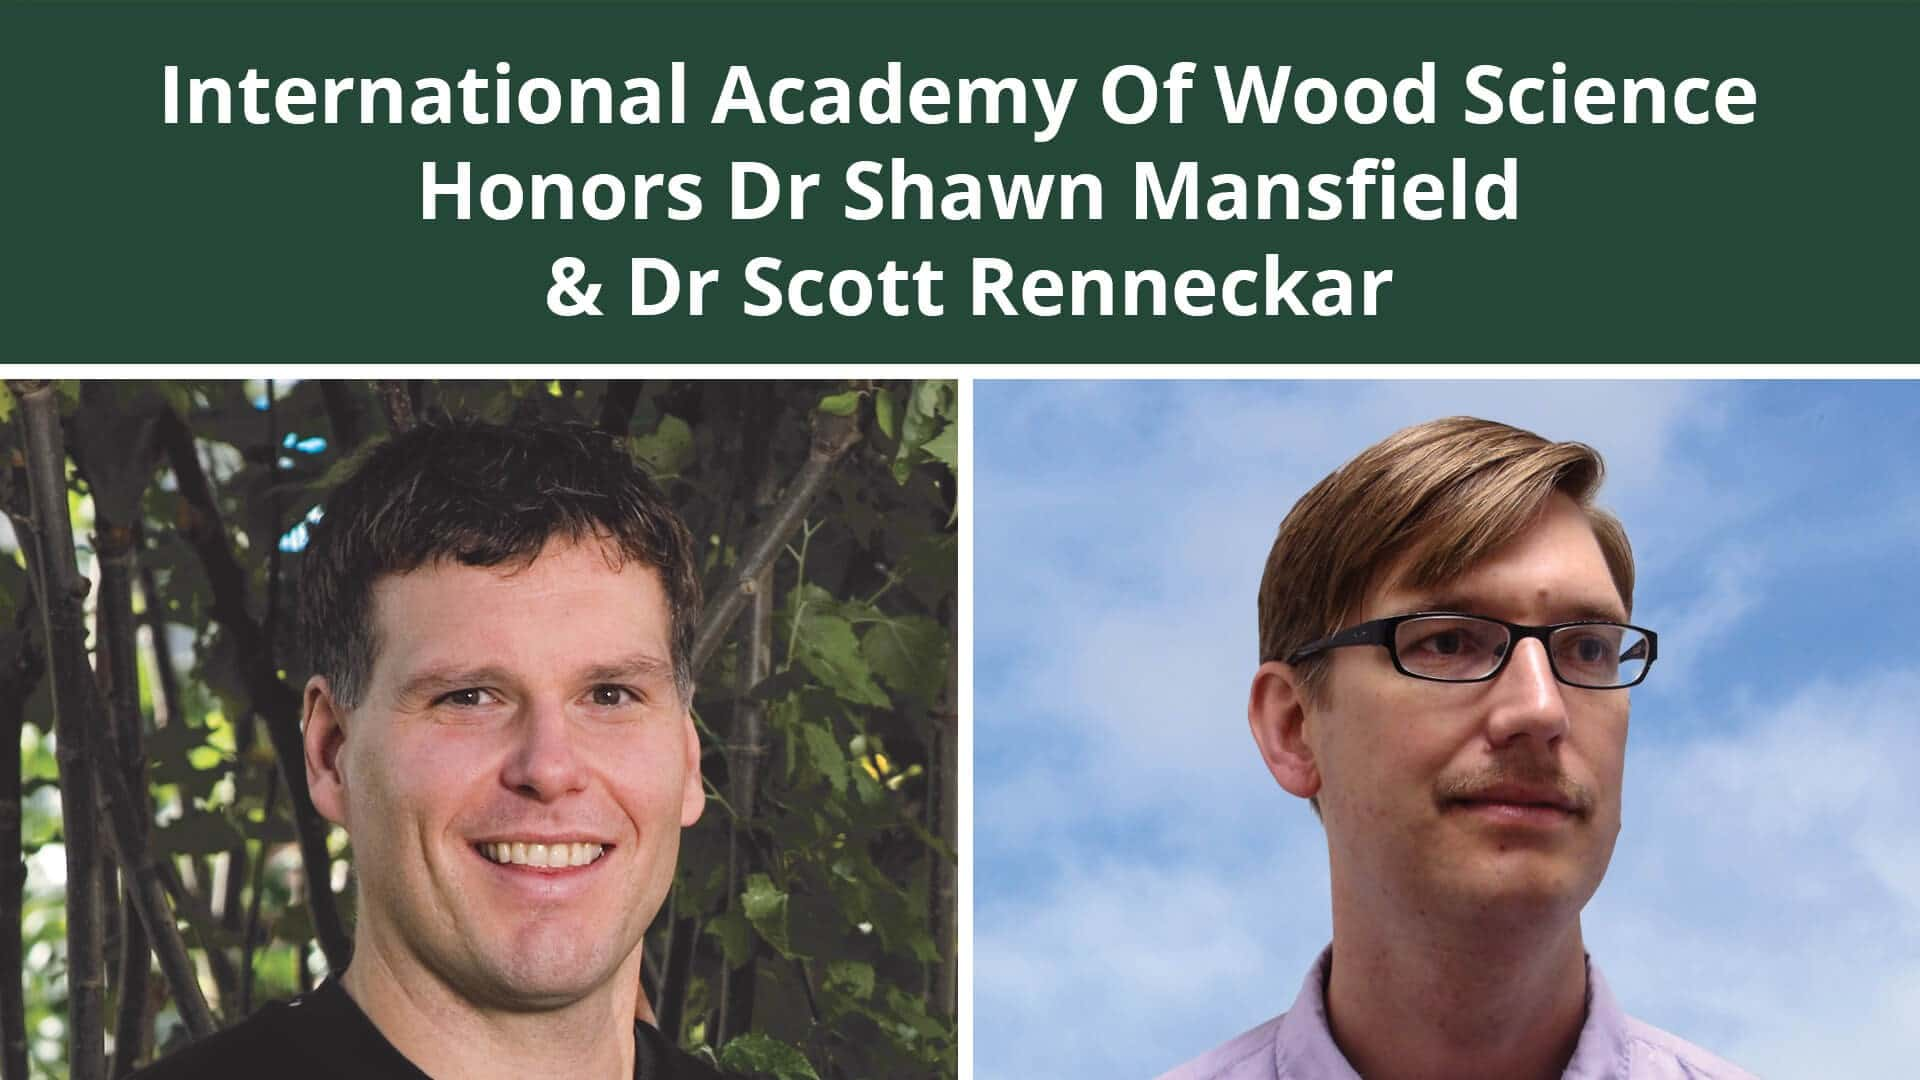 International Academy of Wood Science Honors Dr Shawn Mansfield and Dr Scott Renneckar